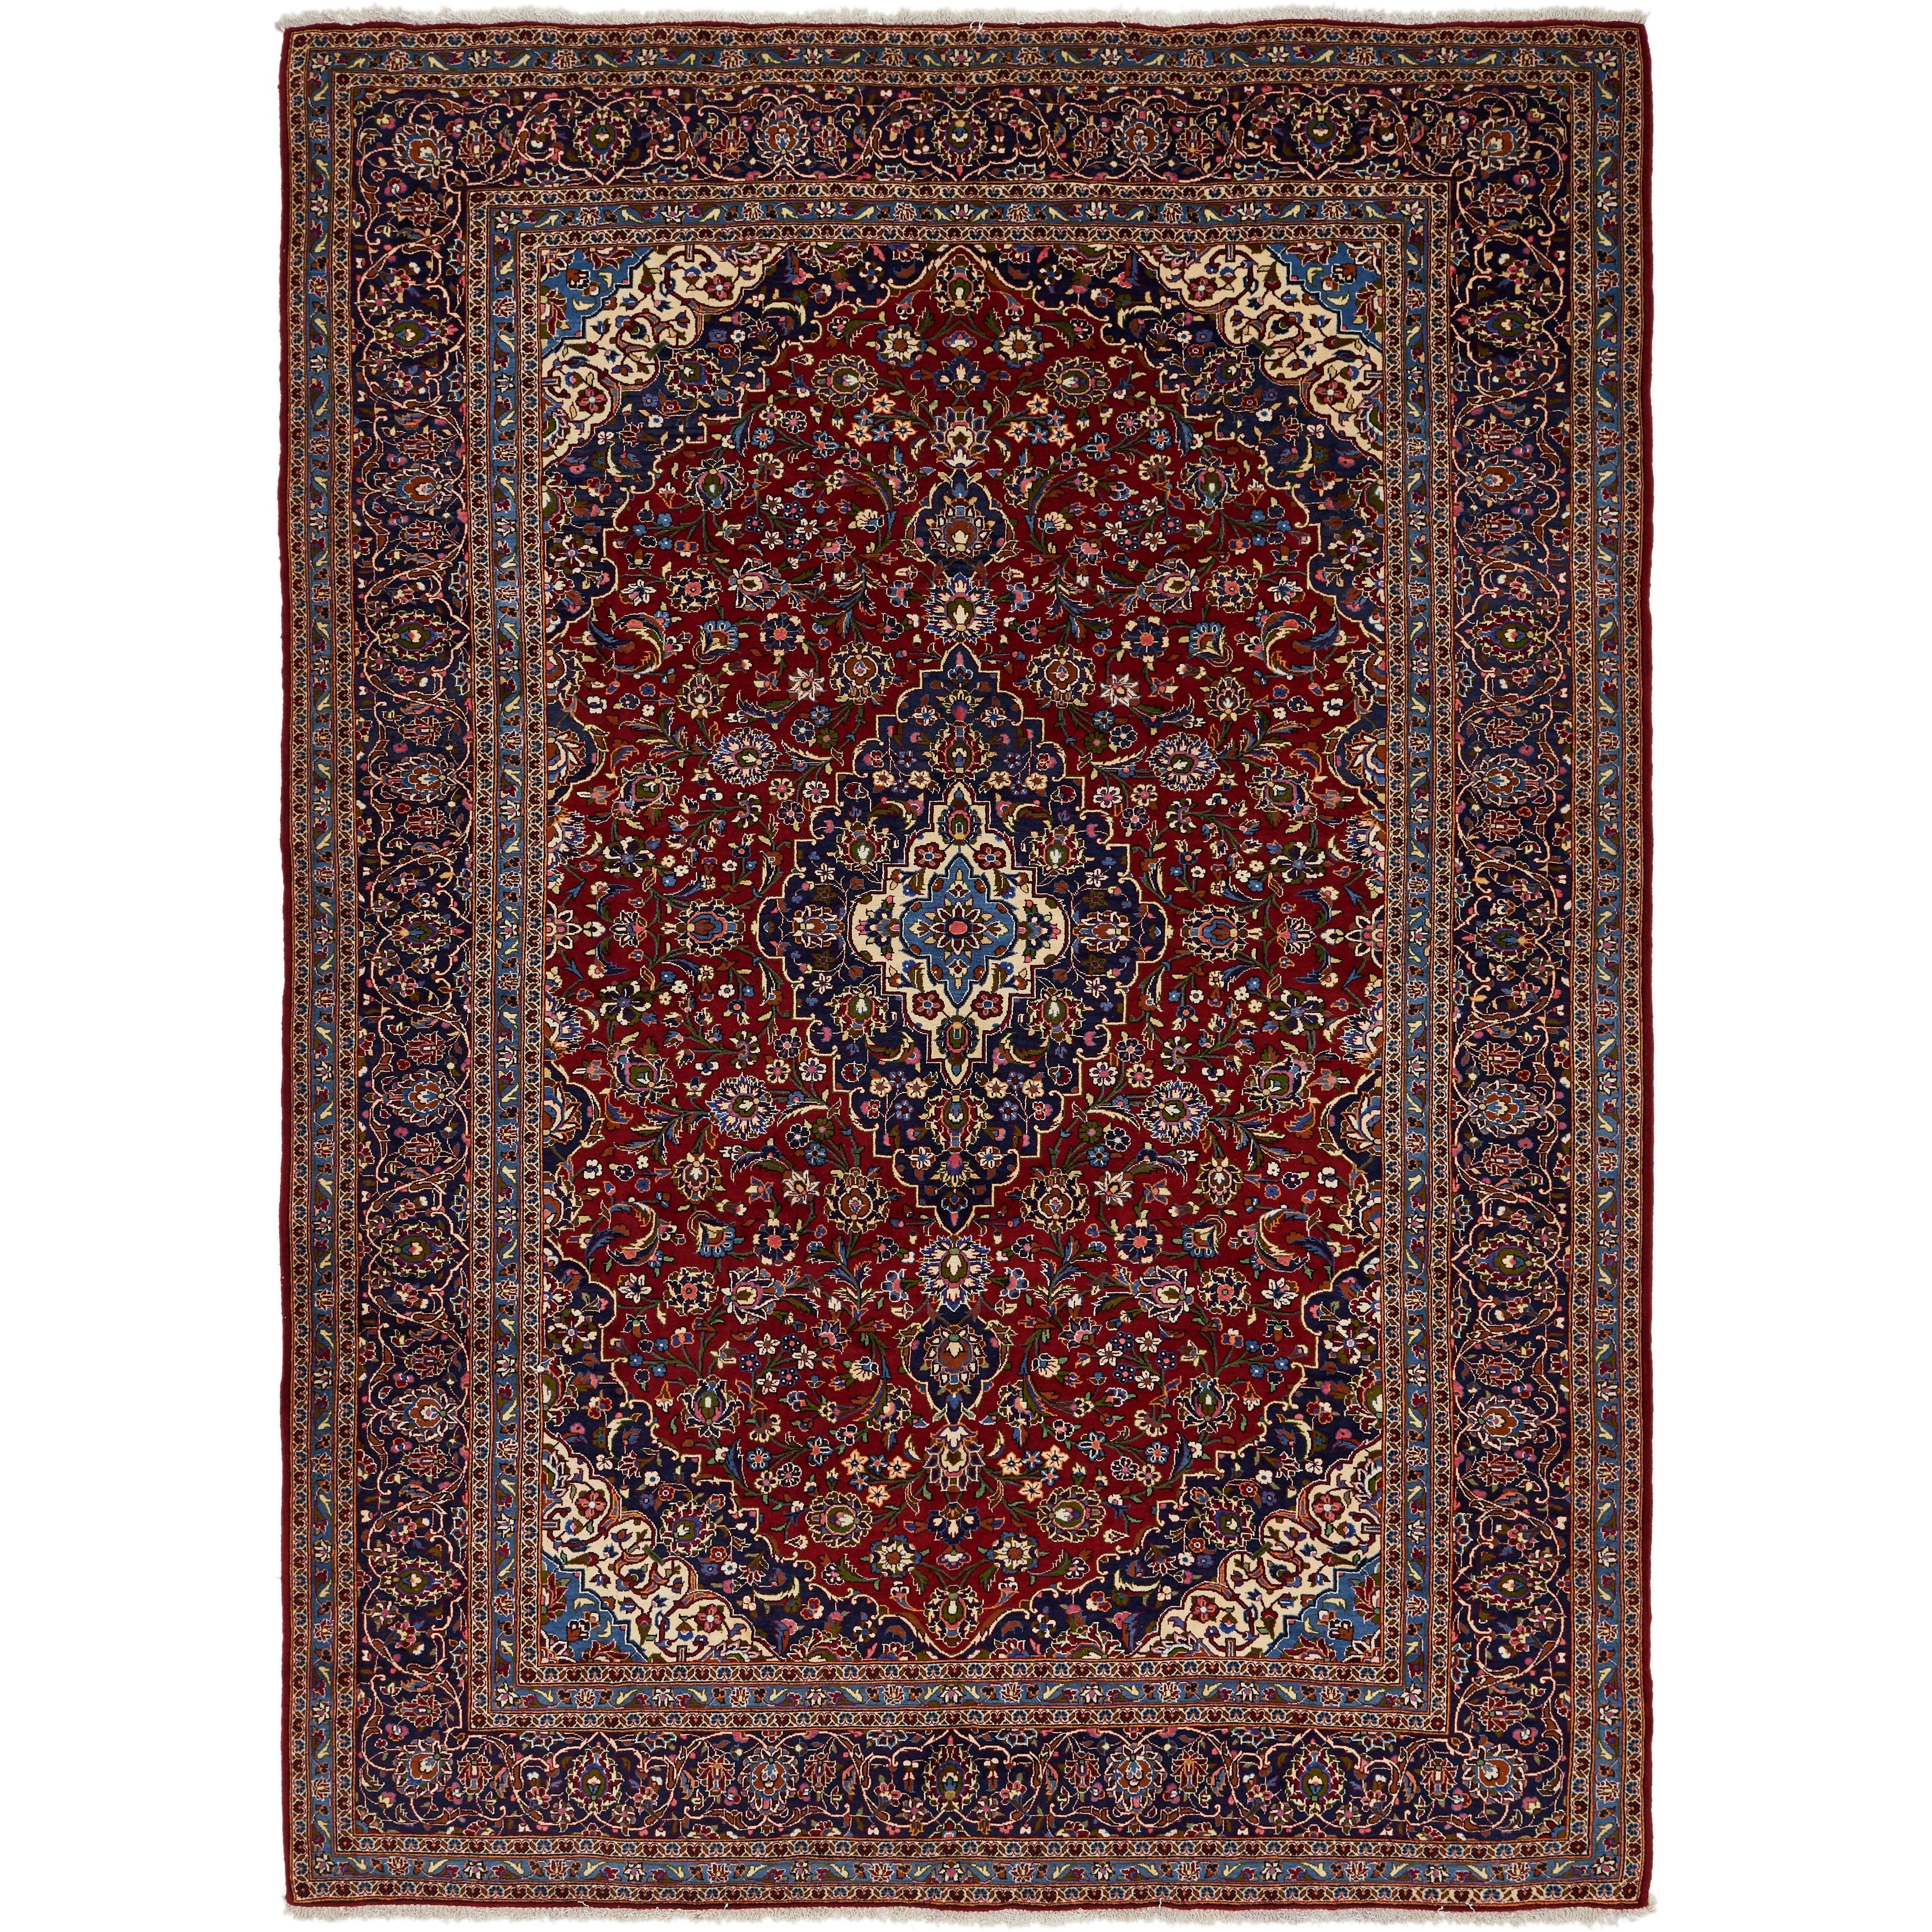 Hand Knotted Kashan Wool Area Rug - 9 9 x 13 6 (Red - 9 9 x 13 6)